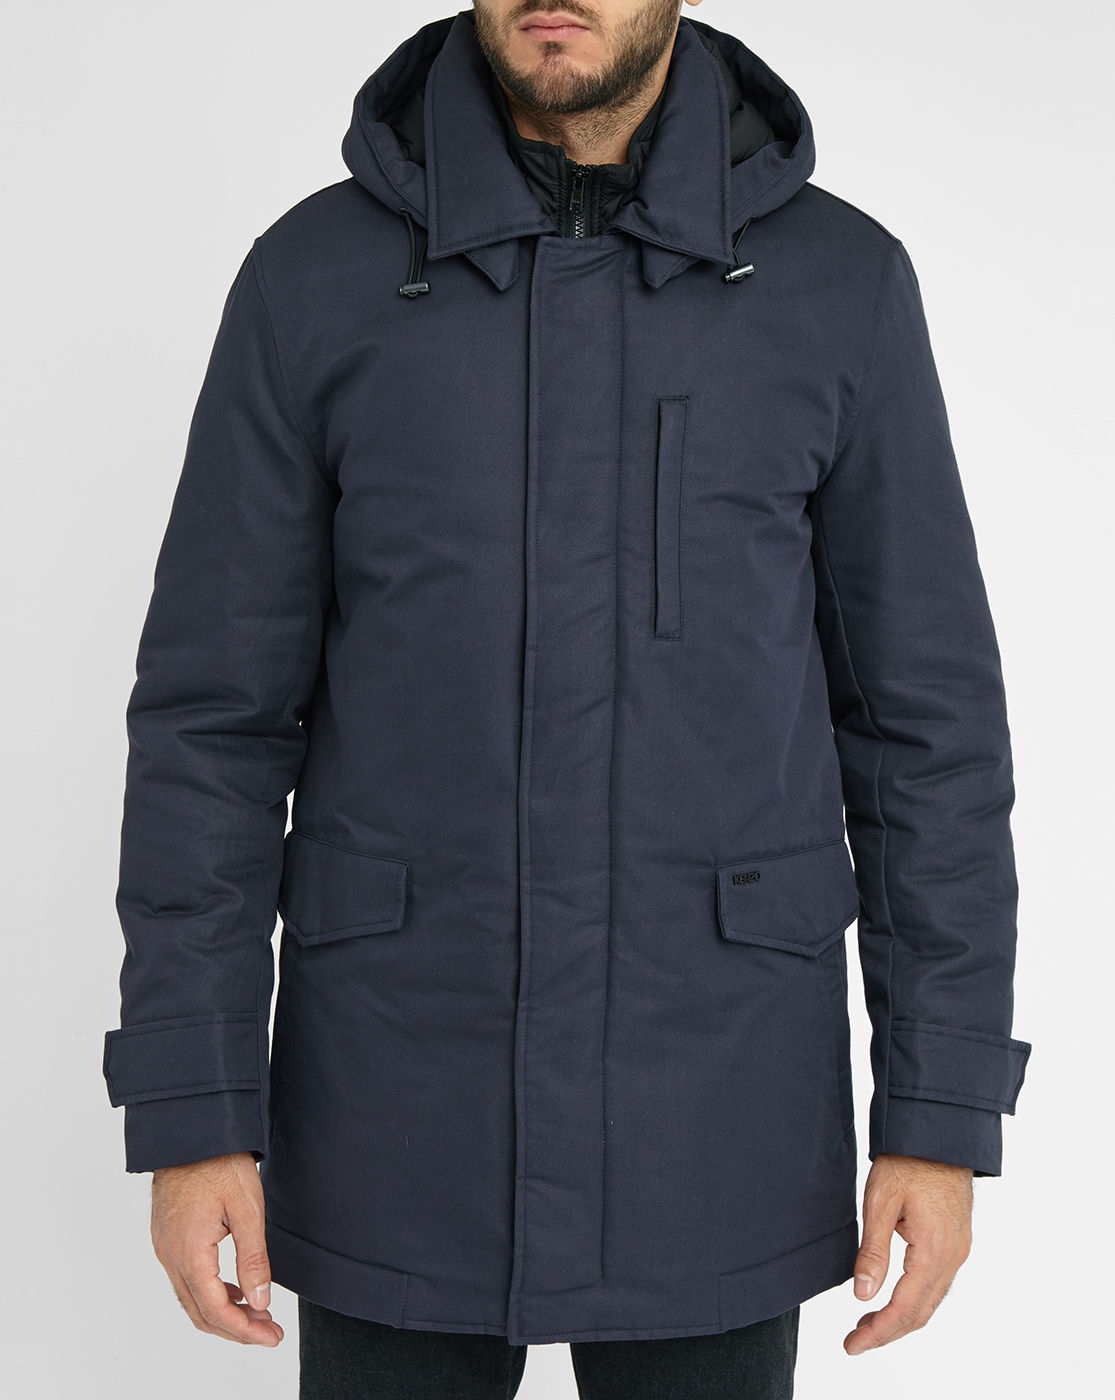 Kenzo Navy Printed Lining Quilted Parka In Blue For Men Lyst